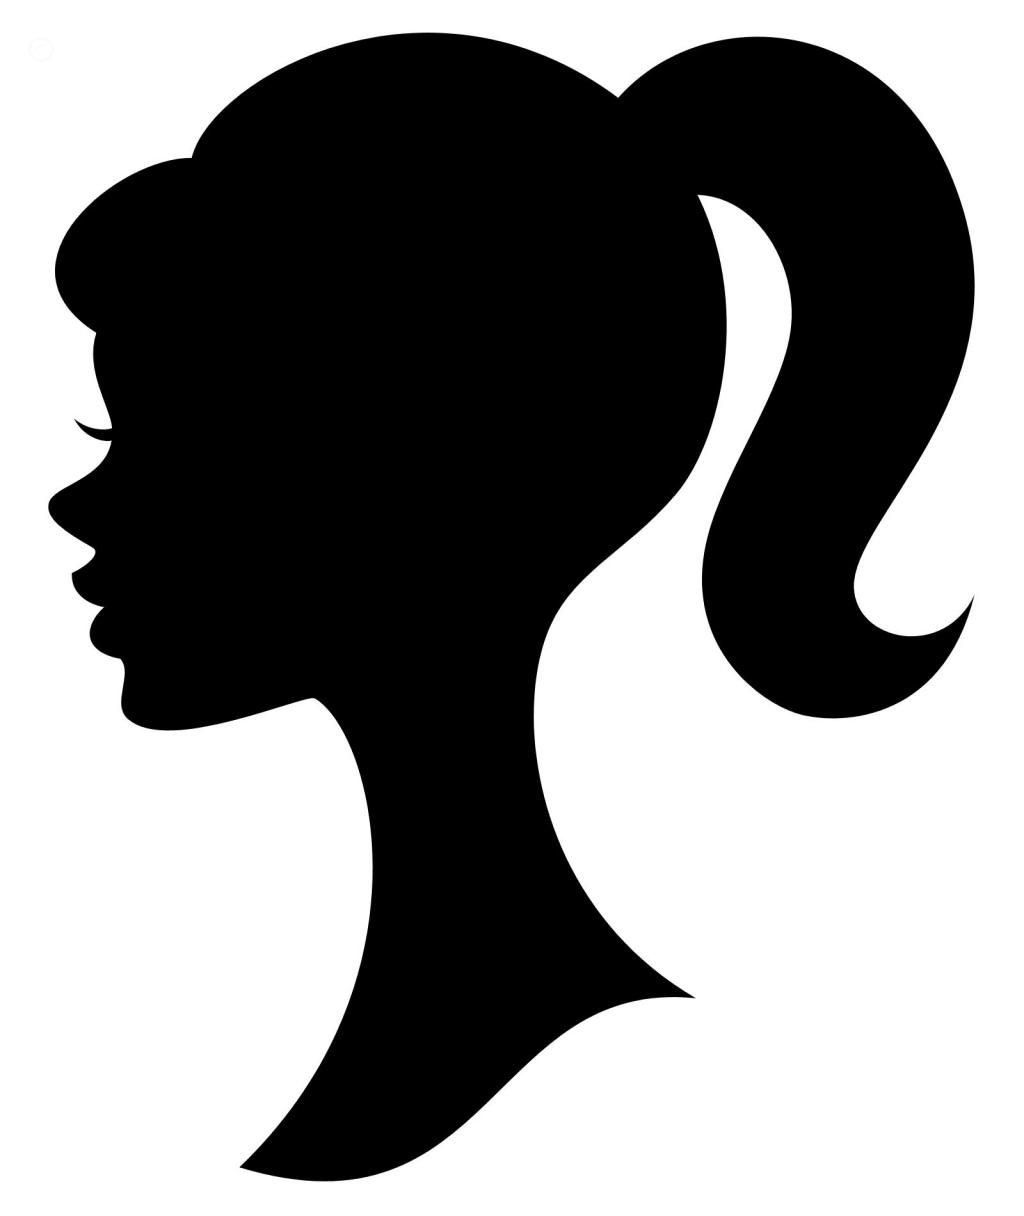 barbie silhouette barbie png logo barbie head silhouette png image barbie silhouette